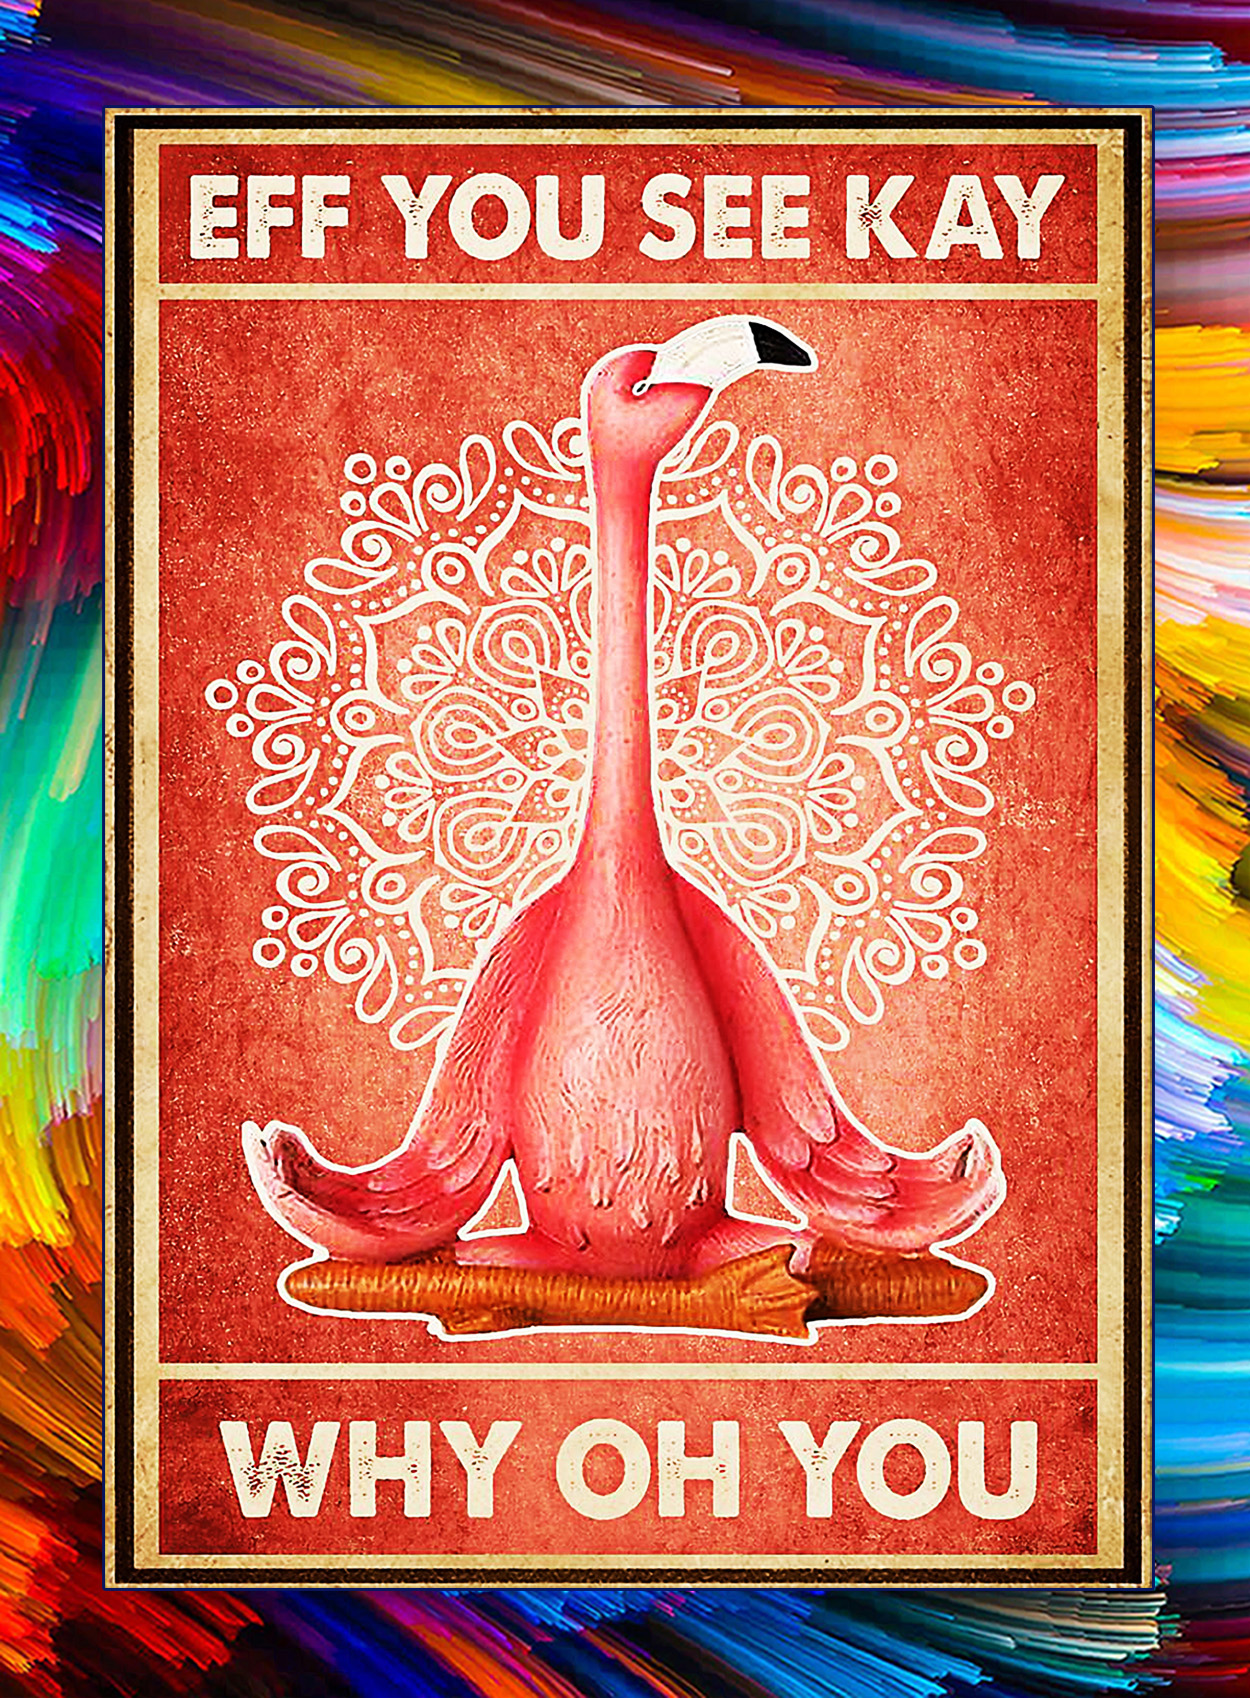 Flamingo retro sun eff you see kay why oh you poster - A2